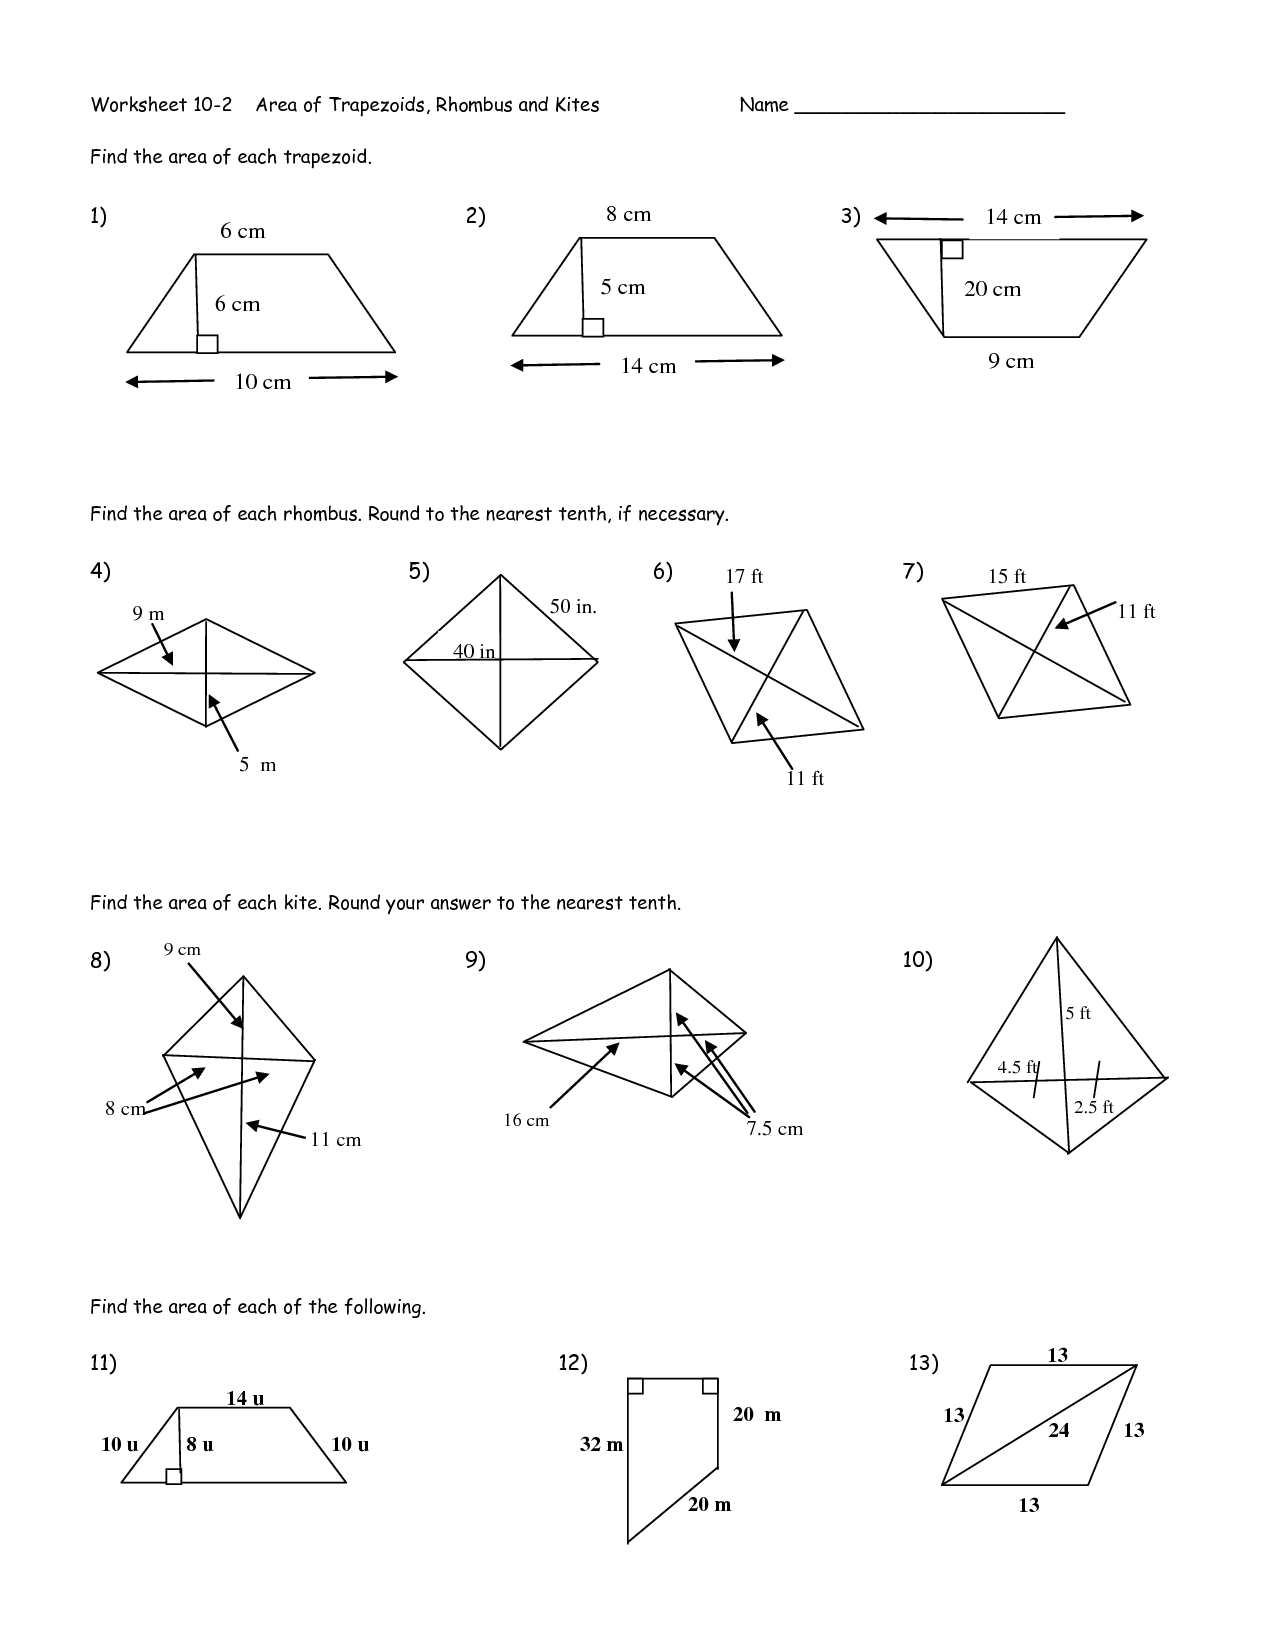 Worksheet Area Of T Zoid Worksheet Worksheet Fun